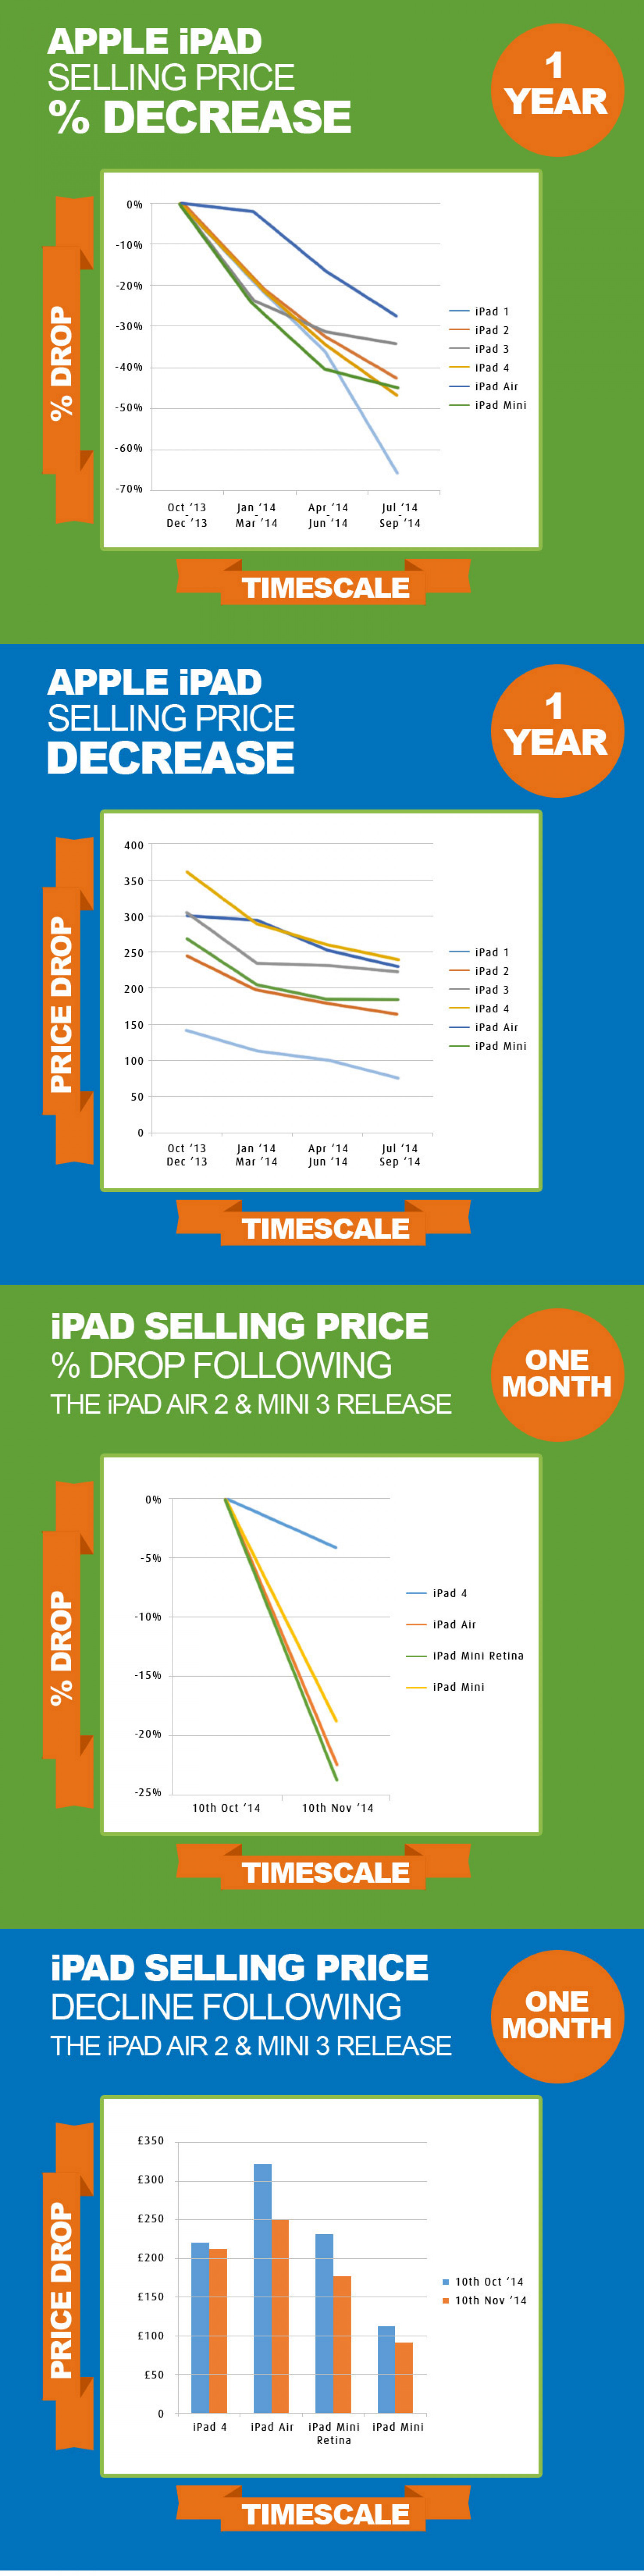 iPad Air 2 and iPad Mini 3 launch - How it's impacted the trade-in market Infographic